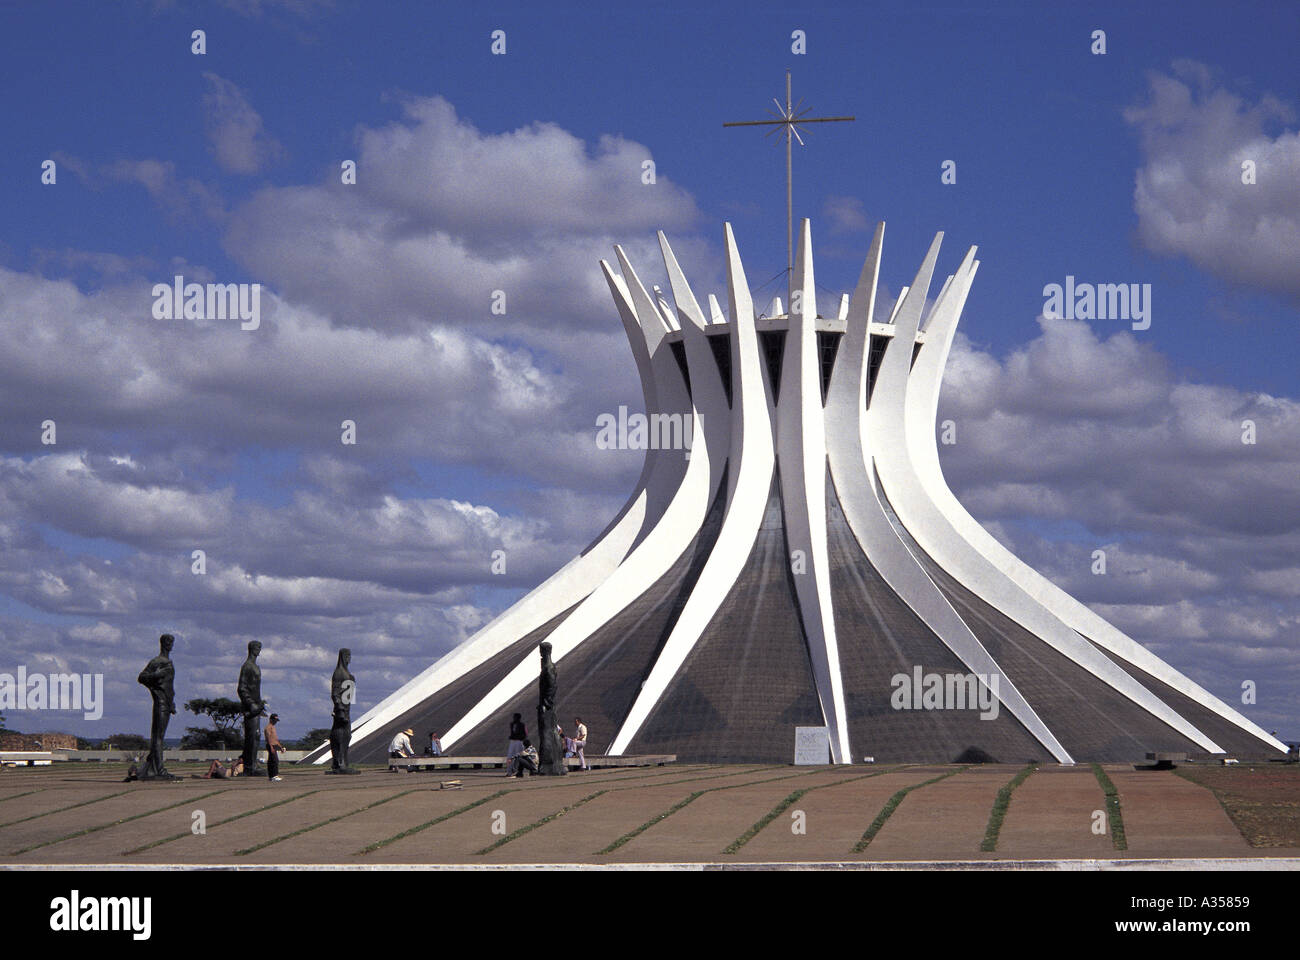 2f438270993f3b Brasilia Brazil Modern cathedral by Oscar Niemeyer architect with statues  of saints in front